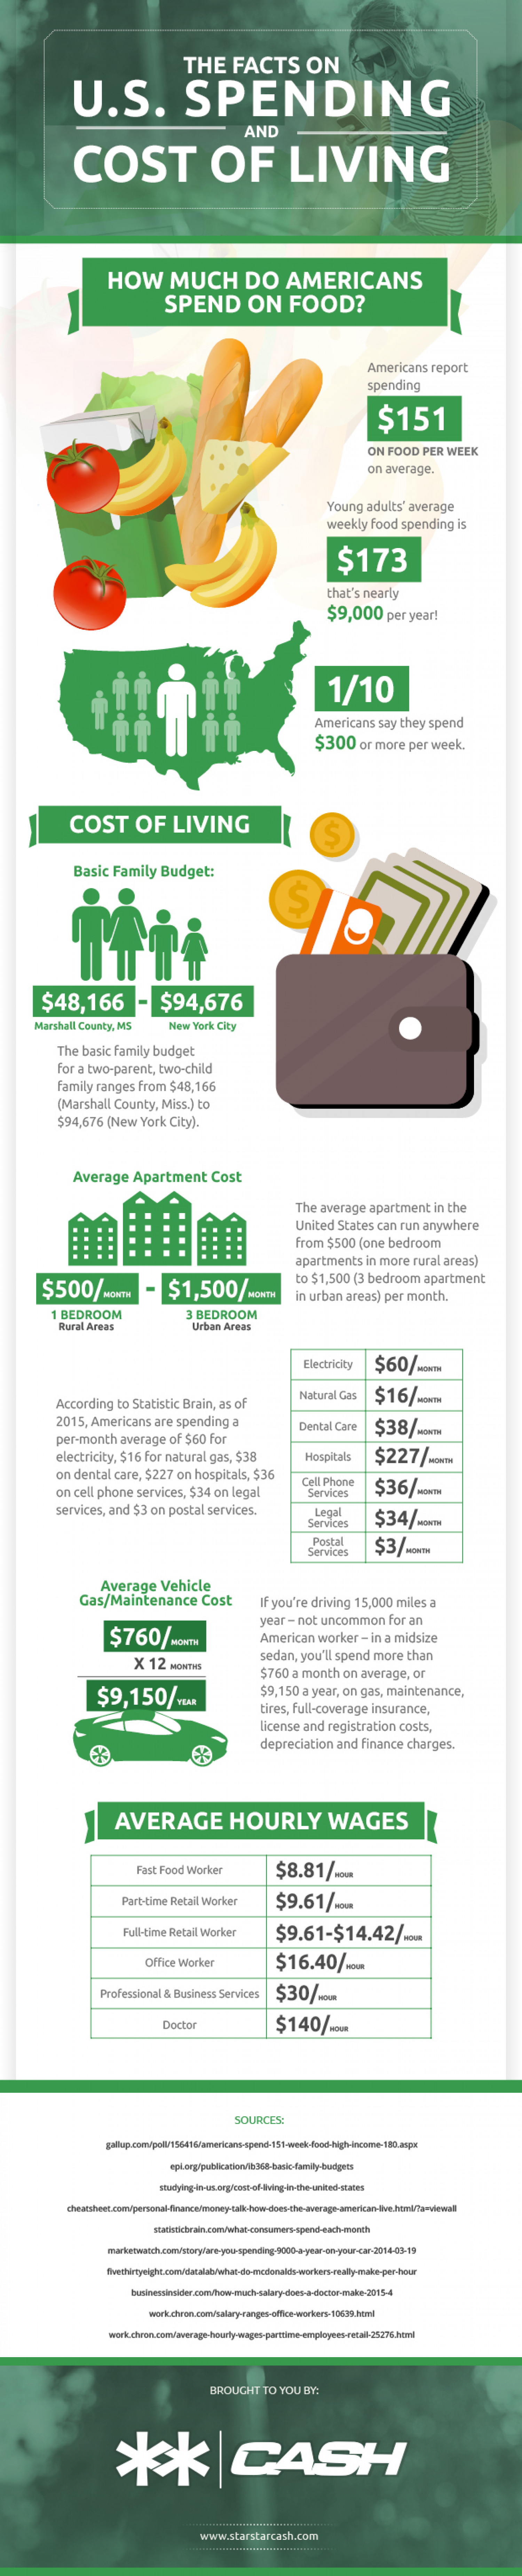 The Facts of US Spending and Cost of Living Infographic